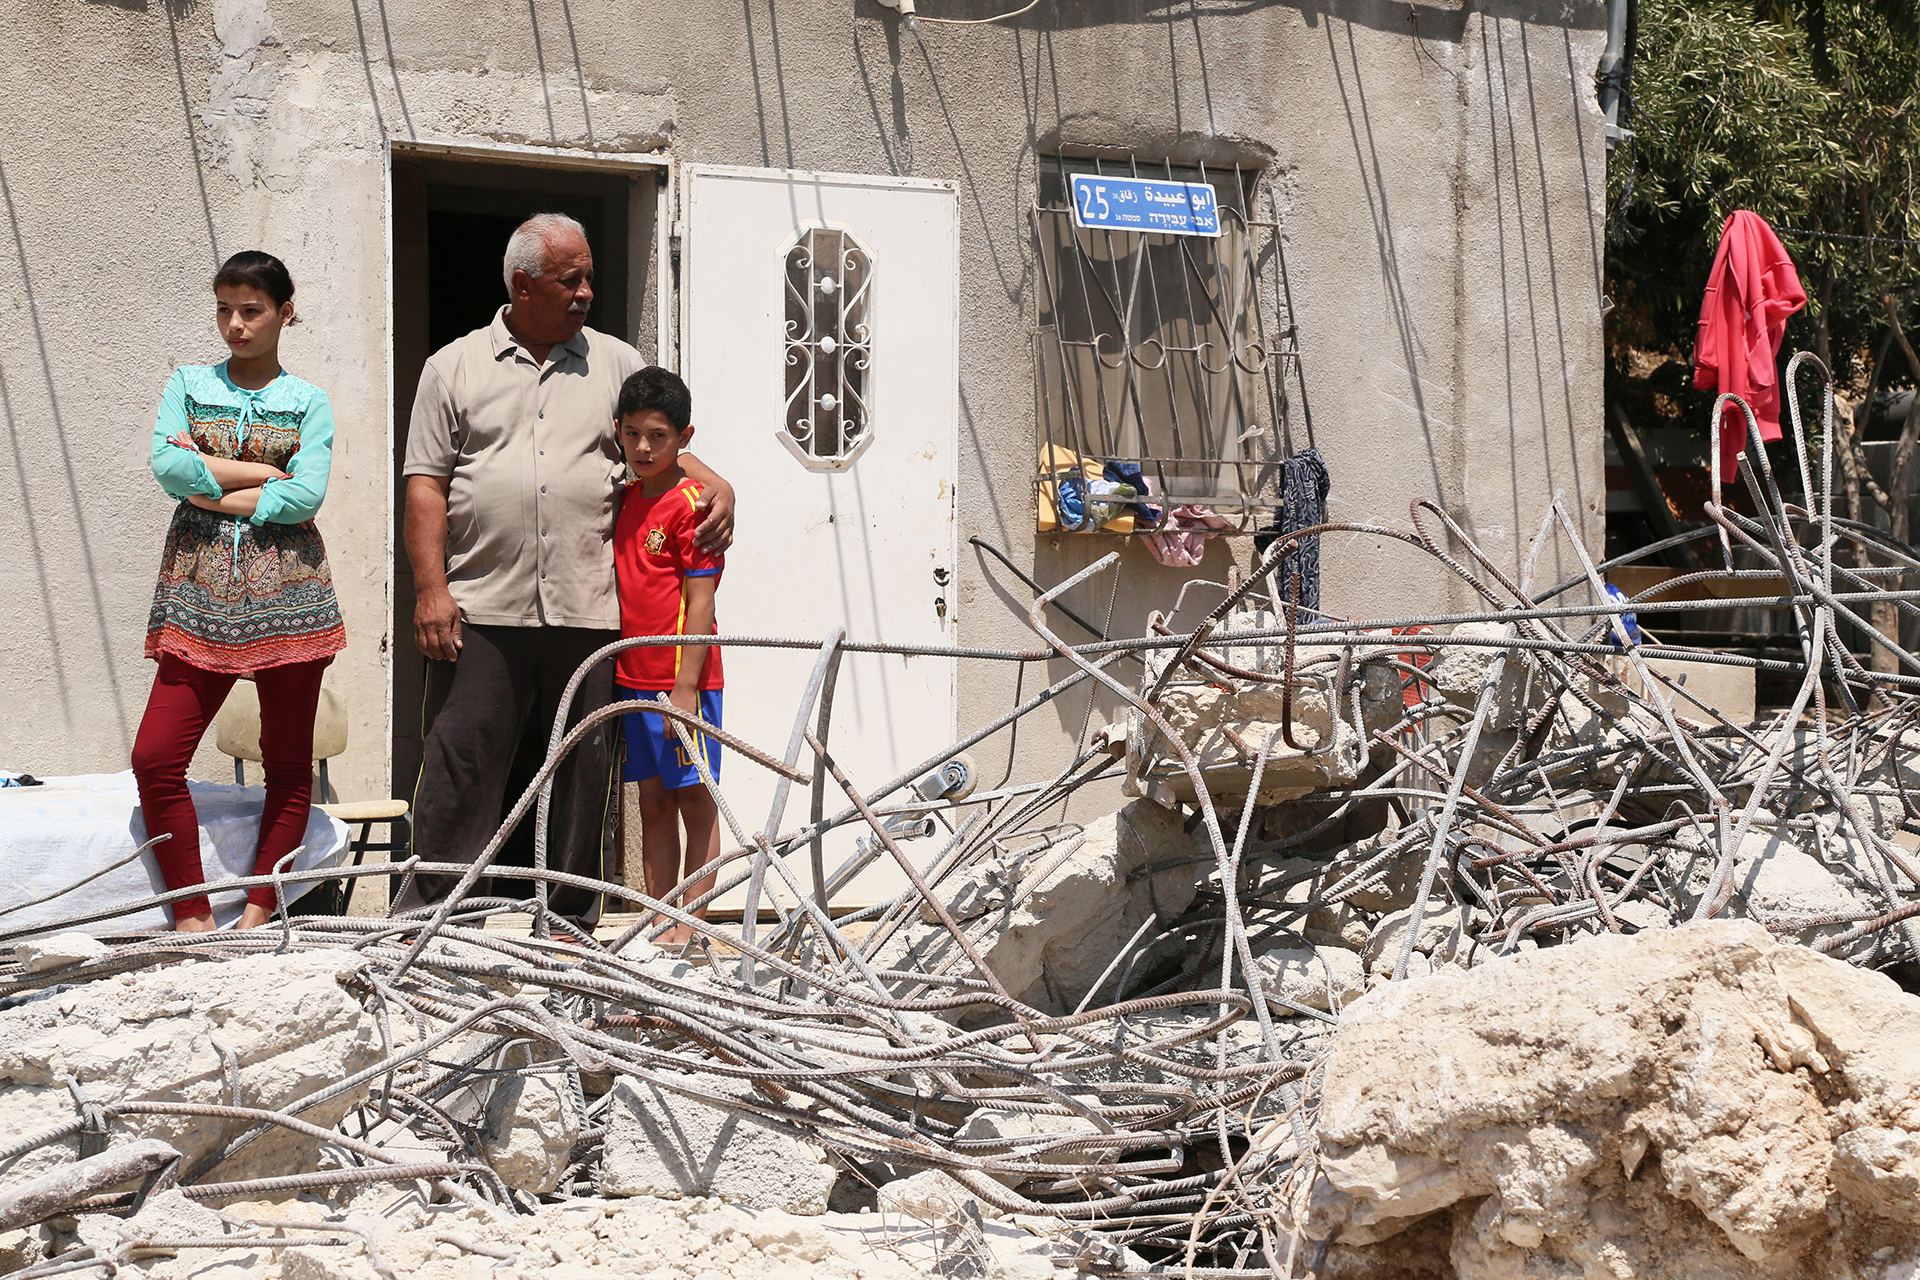 The children's father, Mahmoud Fawaka, demolished the home addition himself, to avoid incurring the much higher cost of a demolition carried out by Israeli authorities. (Photo: DCIP / Ivan Karakashian)